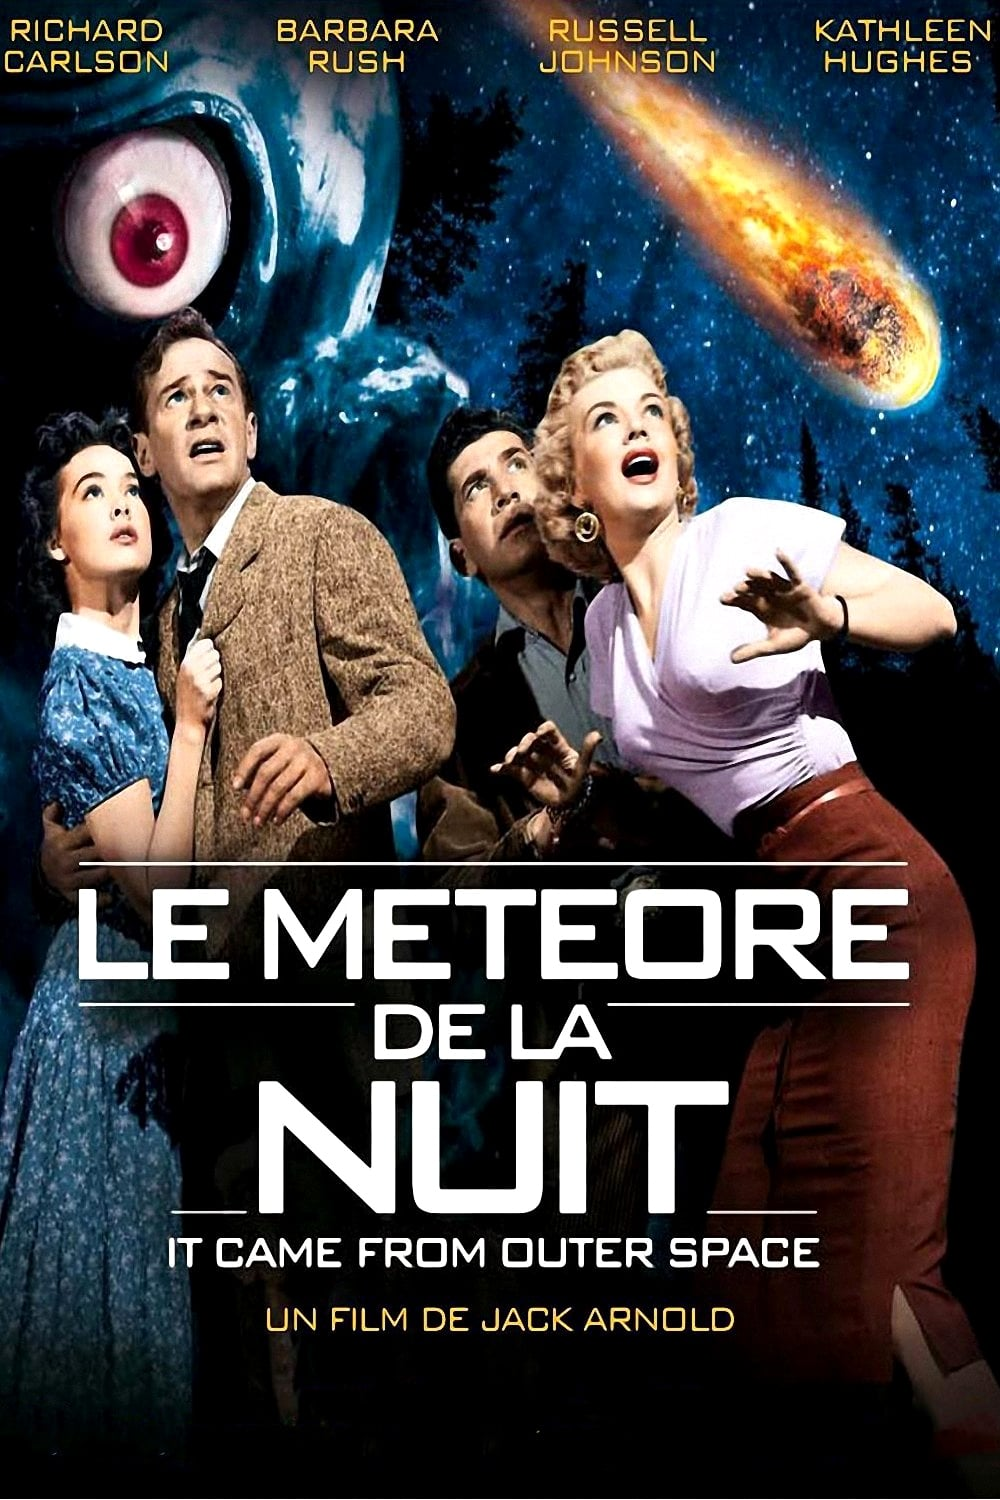 It came from outer space 1953 watch free primewire for Watch it came from outer space